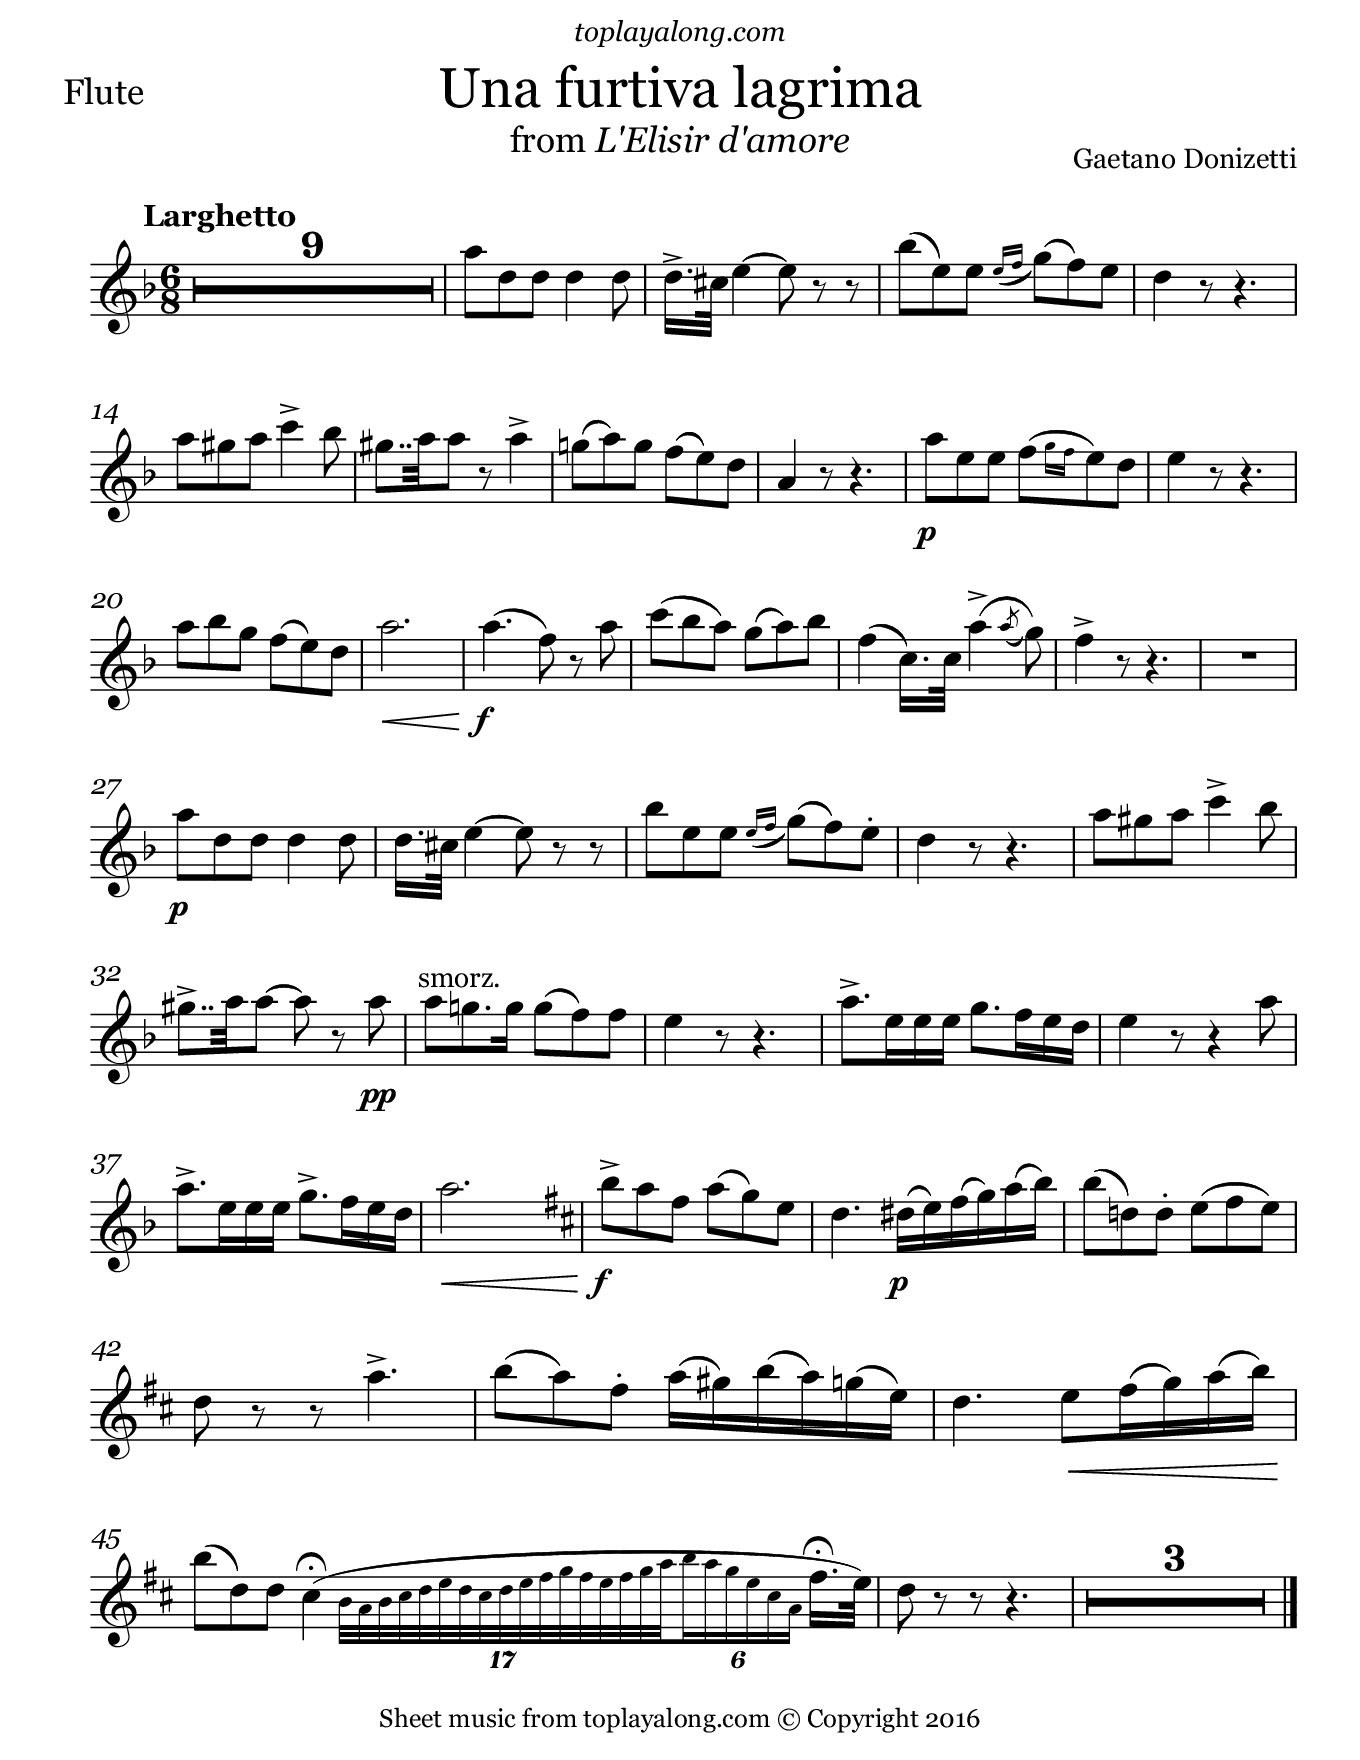 Una furtiva lagrima from L'elisir d'amore by Donizetti. Sheet music for Flute, page 1.